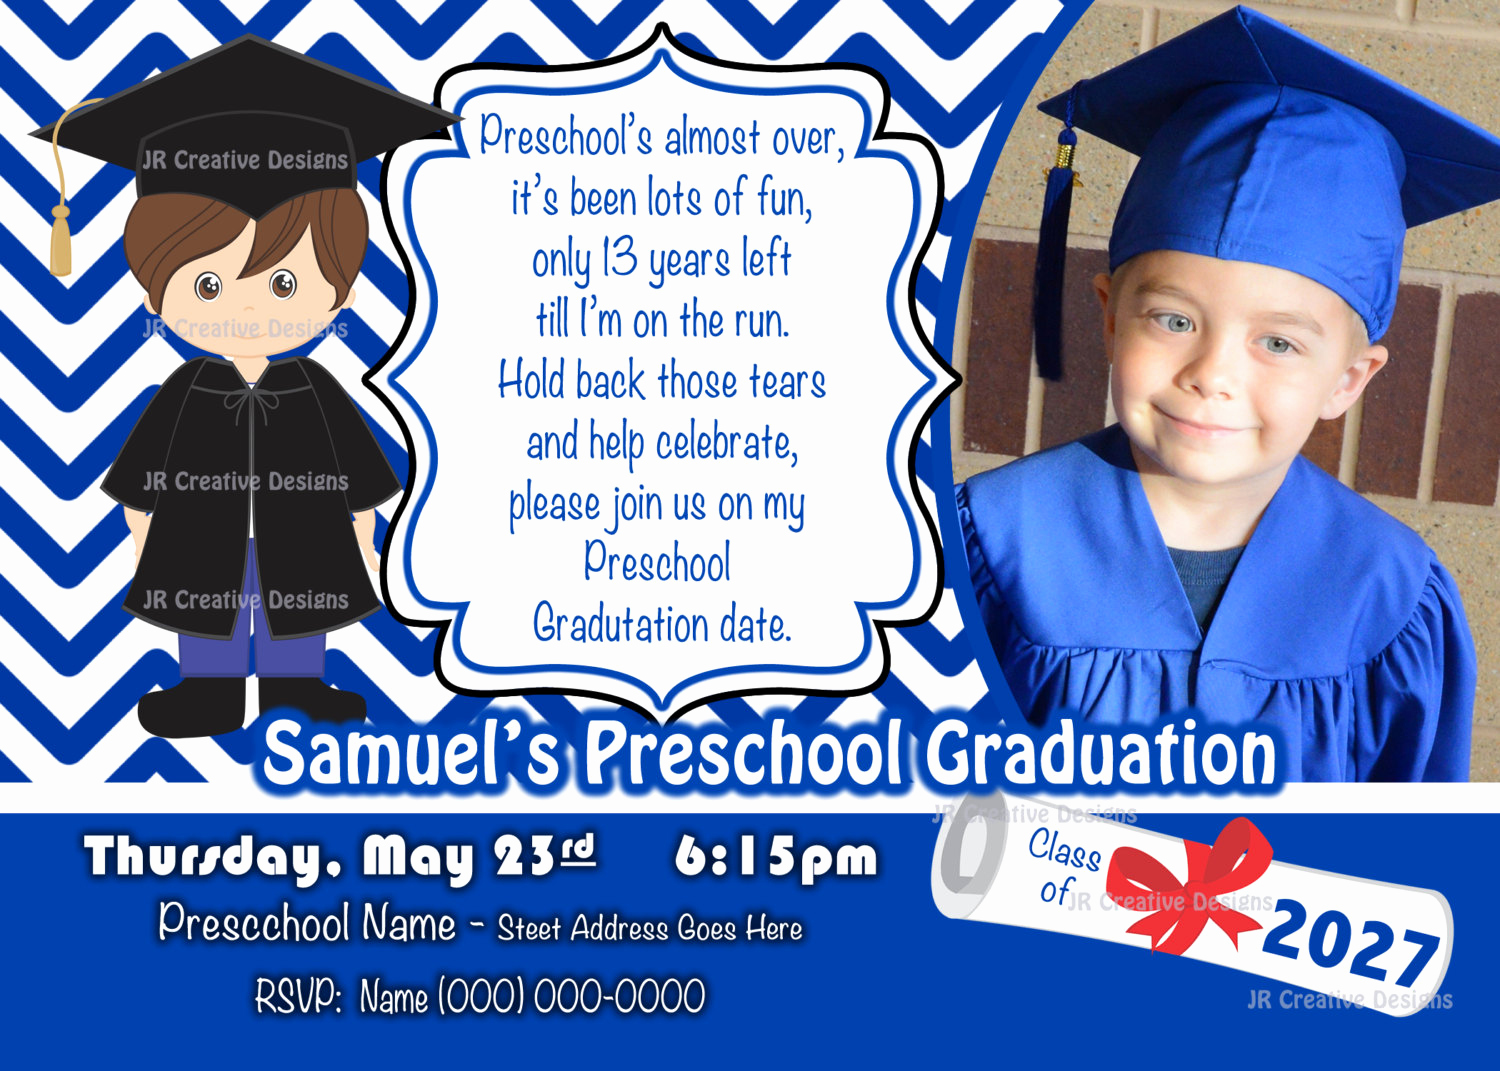 Preschool Graduation Invitation Template Awesome Preschool Graduation Invitation Kindergarten Graduation